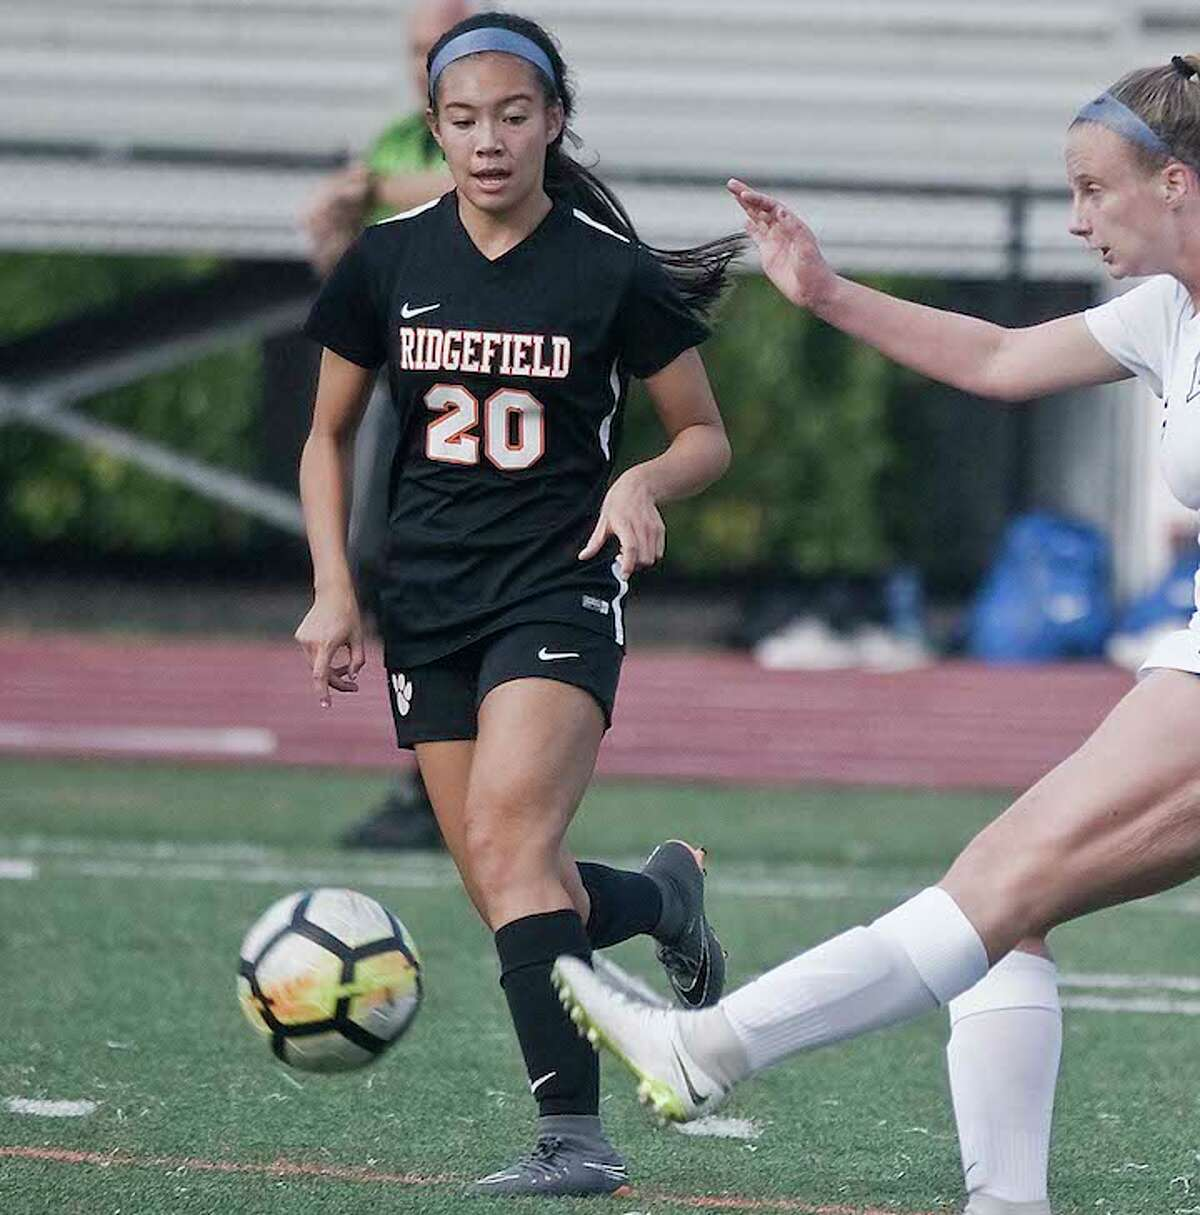 Freshman Julia Bragg scored one of the goals in Ridgefield's 2-0 win over Darien on Saturday. - Scott Mullin photo